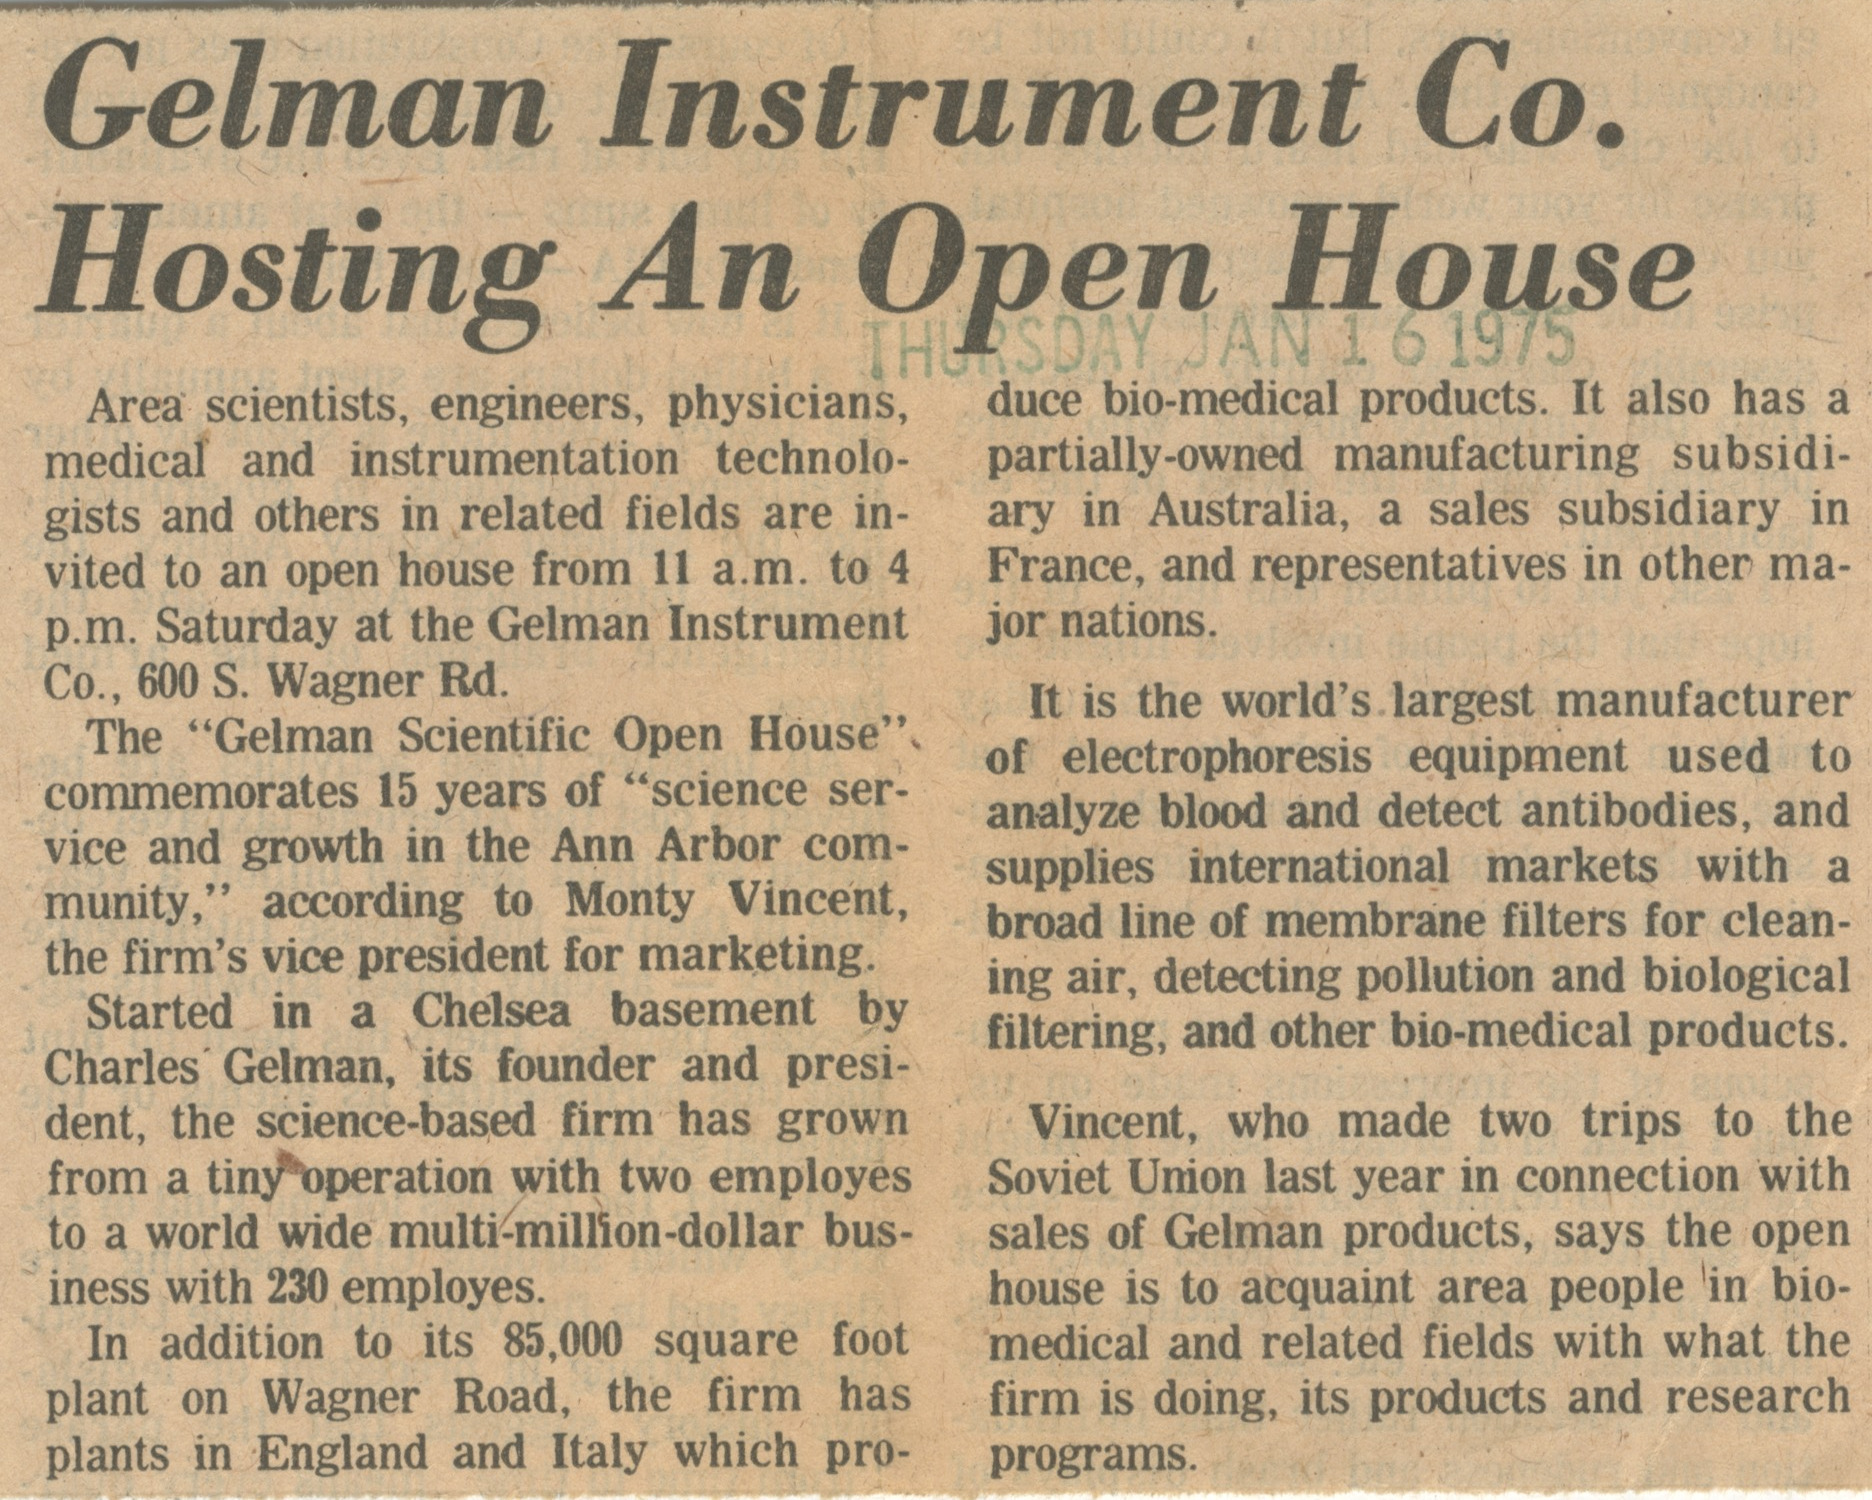 Gelman Instrument Co. Hosting An Open House image